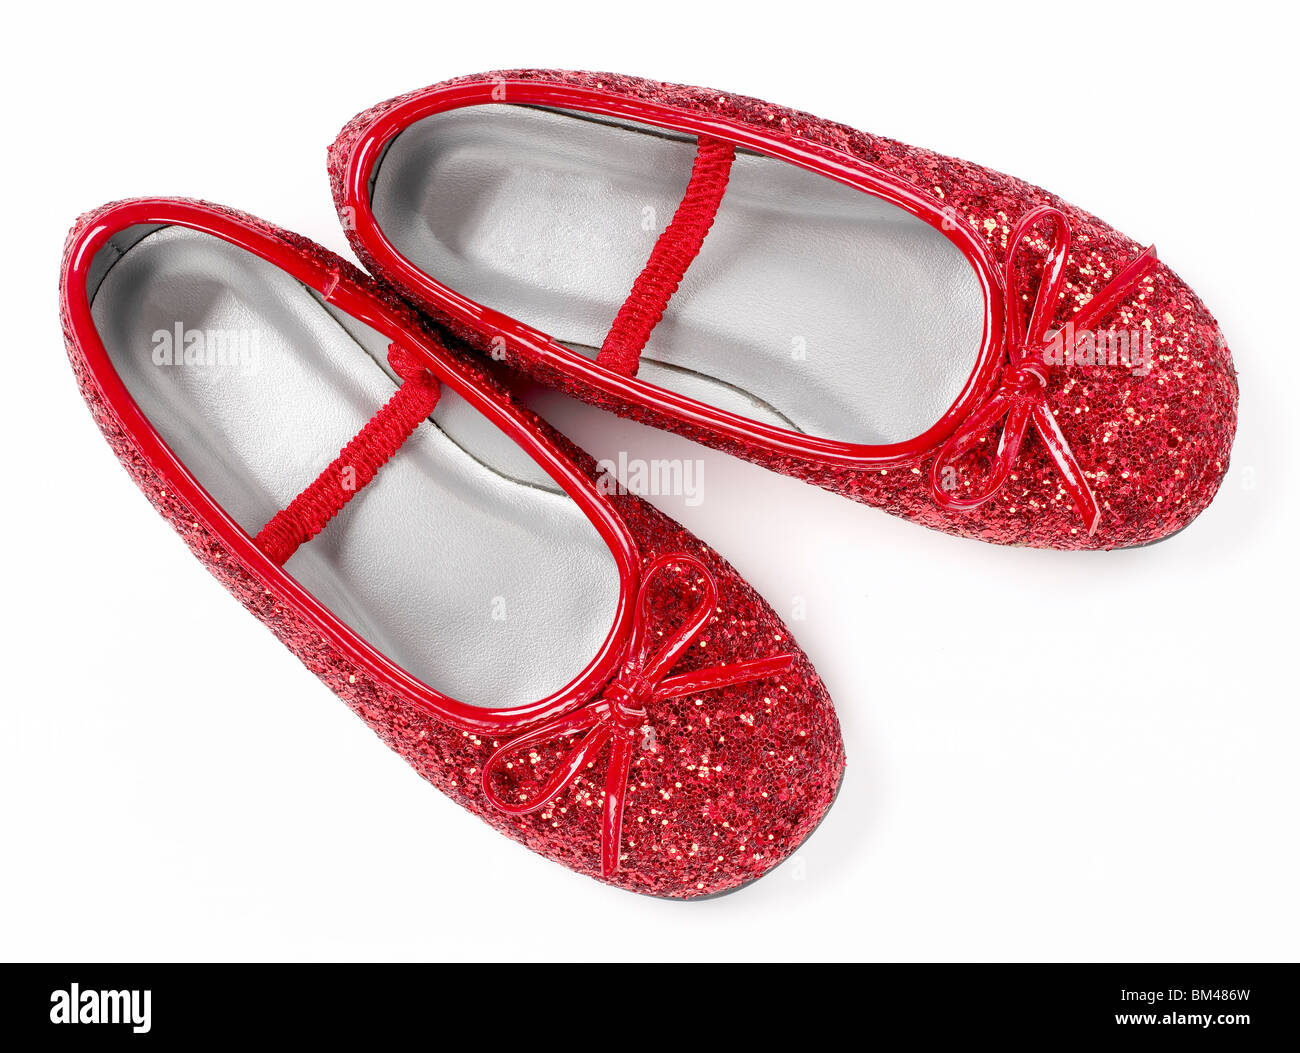 Red ruby slippers shoes - Stock Image